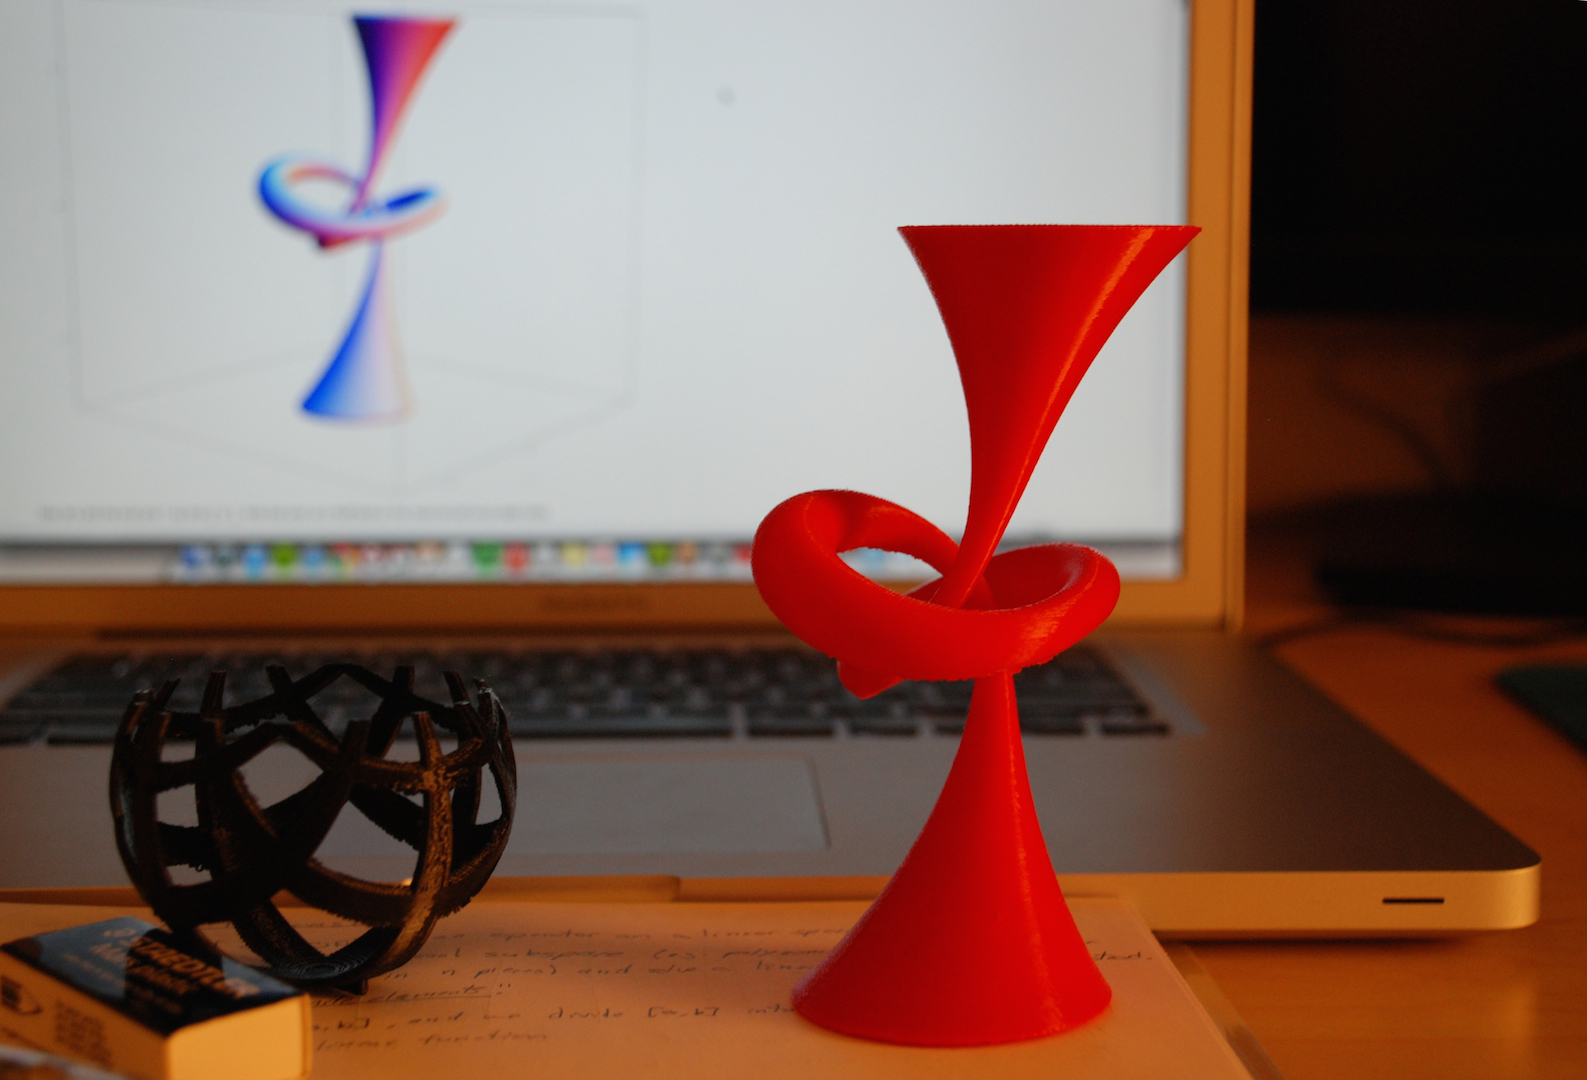 3D Printing the Trefoil Knot and its Pages.